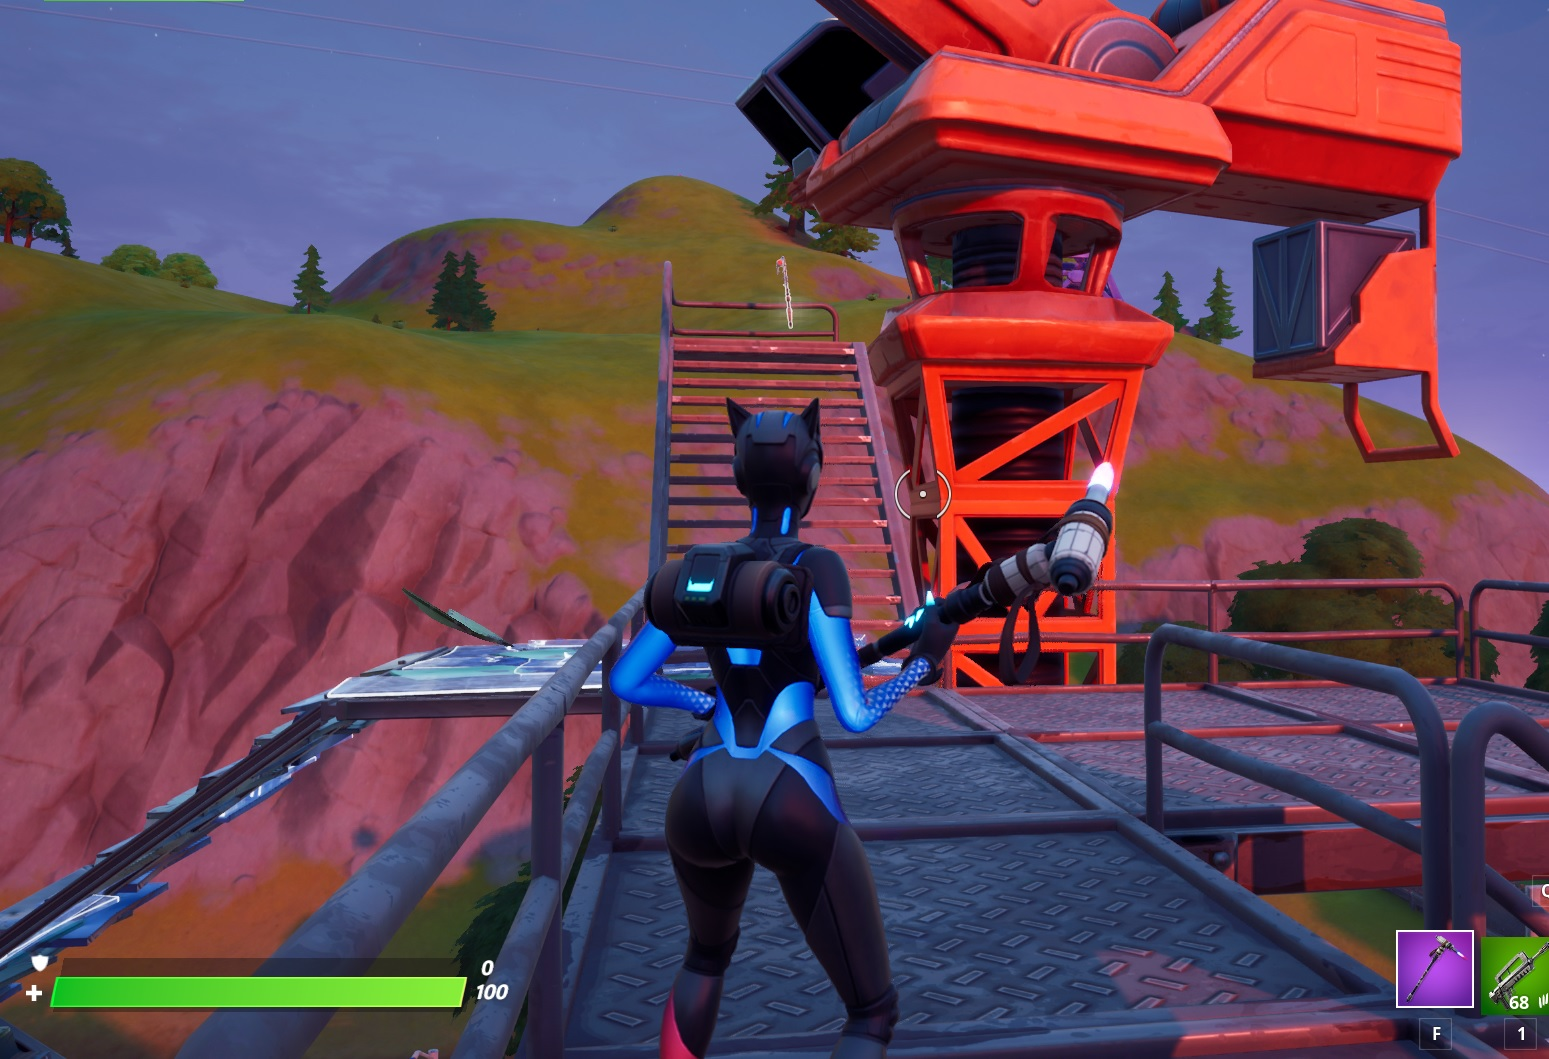 Fortnite: Chapter 2 - Where to find the letter T - VG247